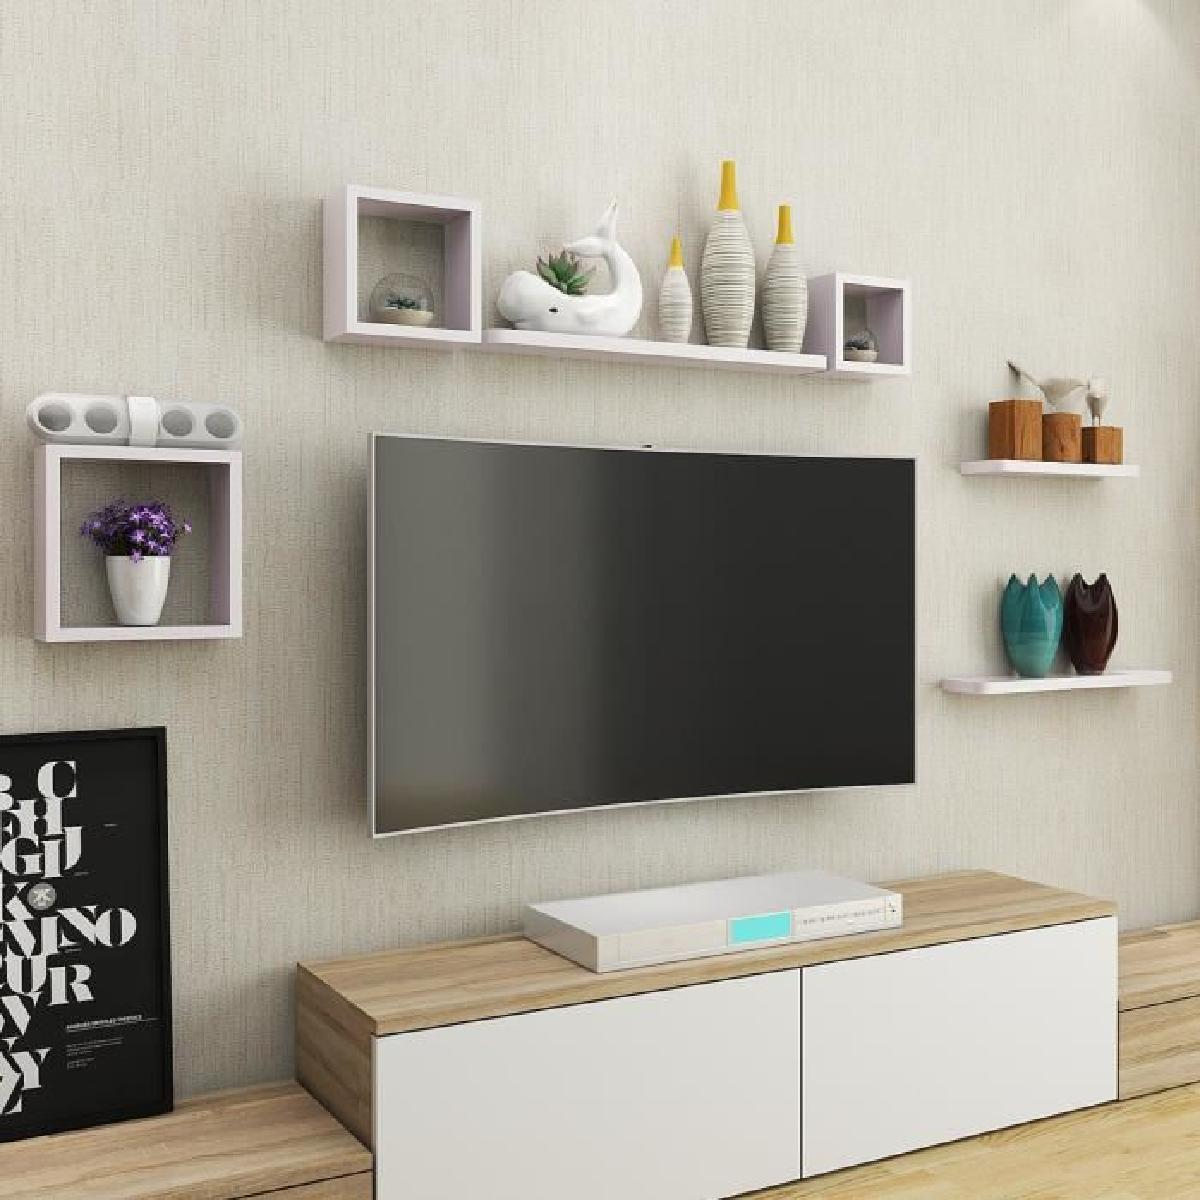 Deco etagere murale salon id es de d coration int rieure french decor - Hauteur tv murale salon ...